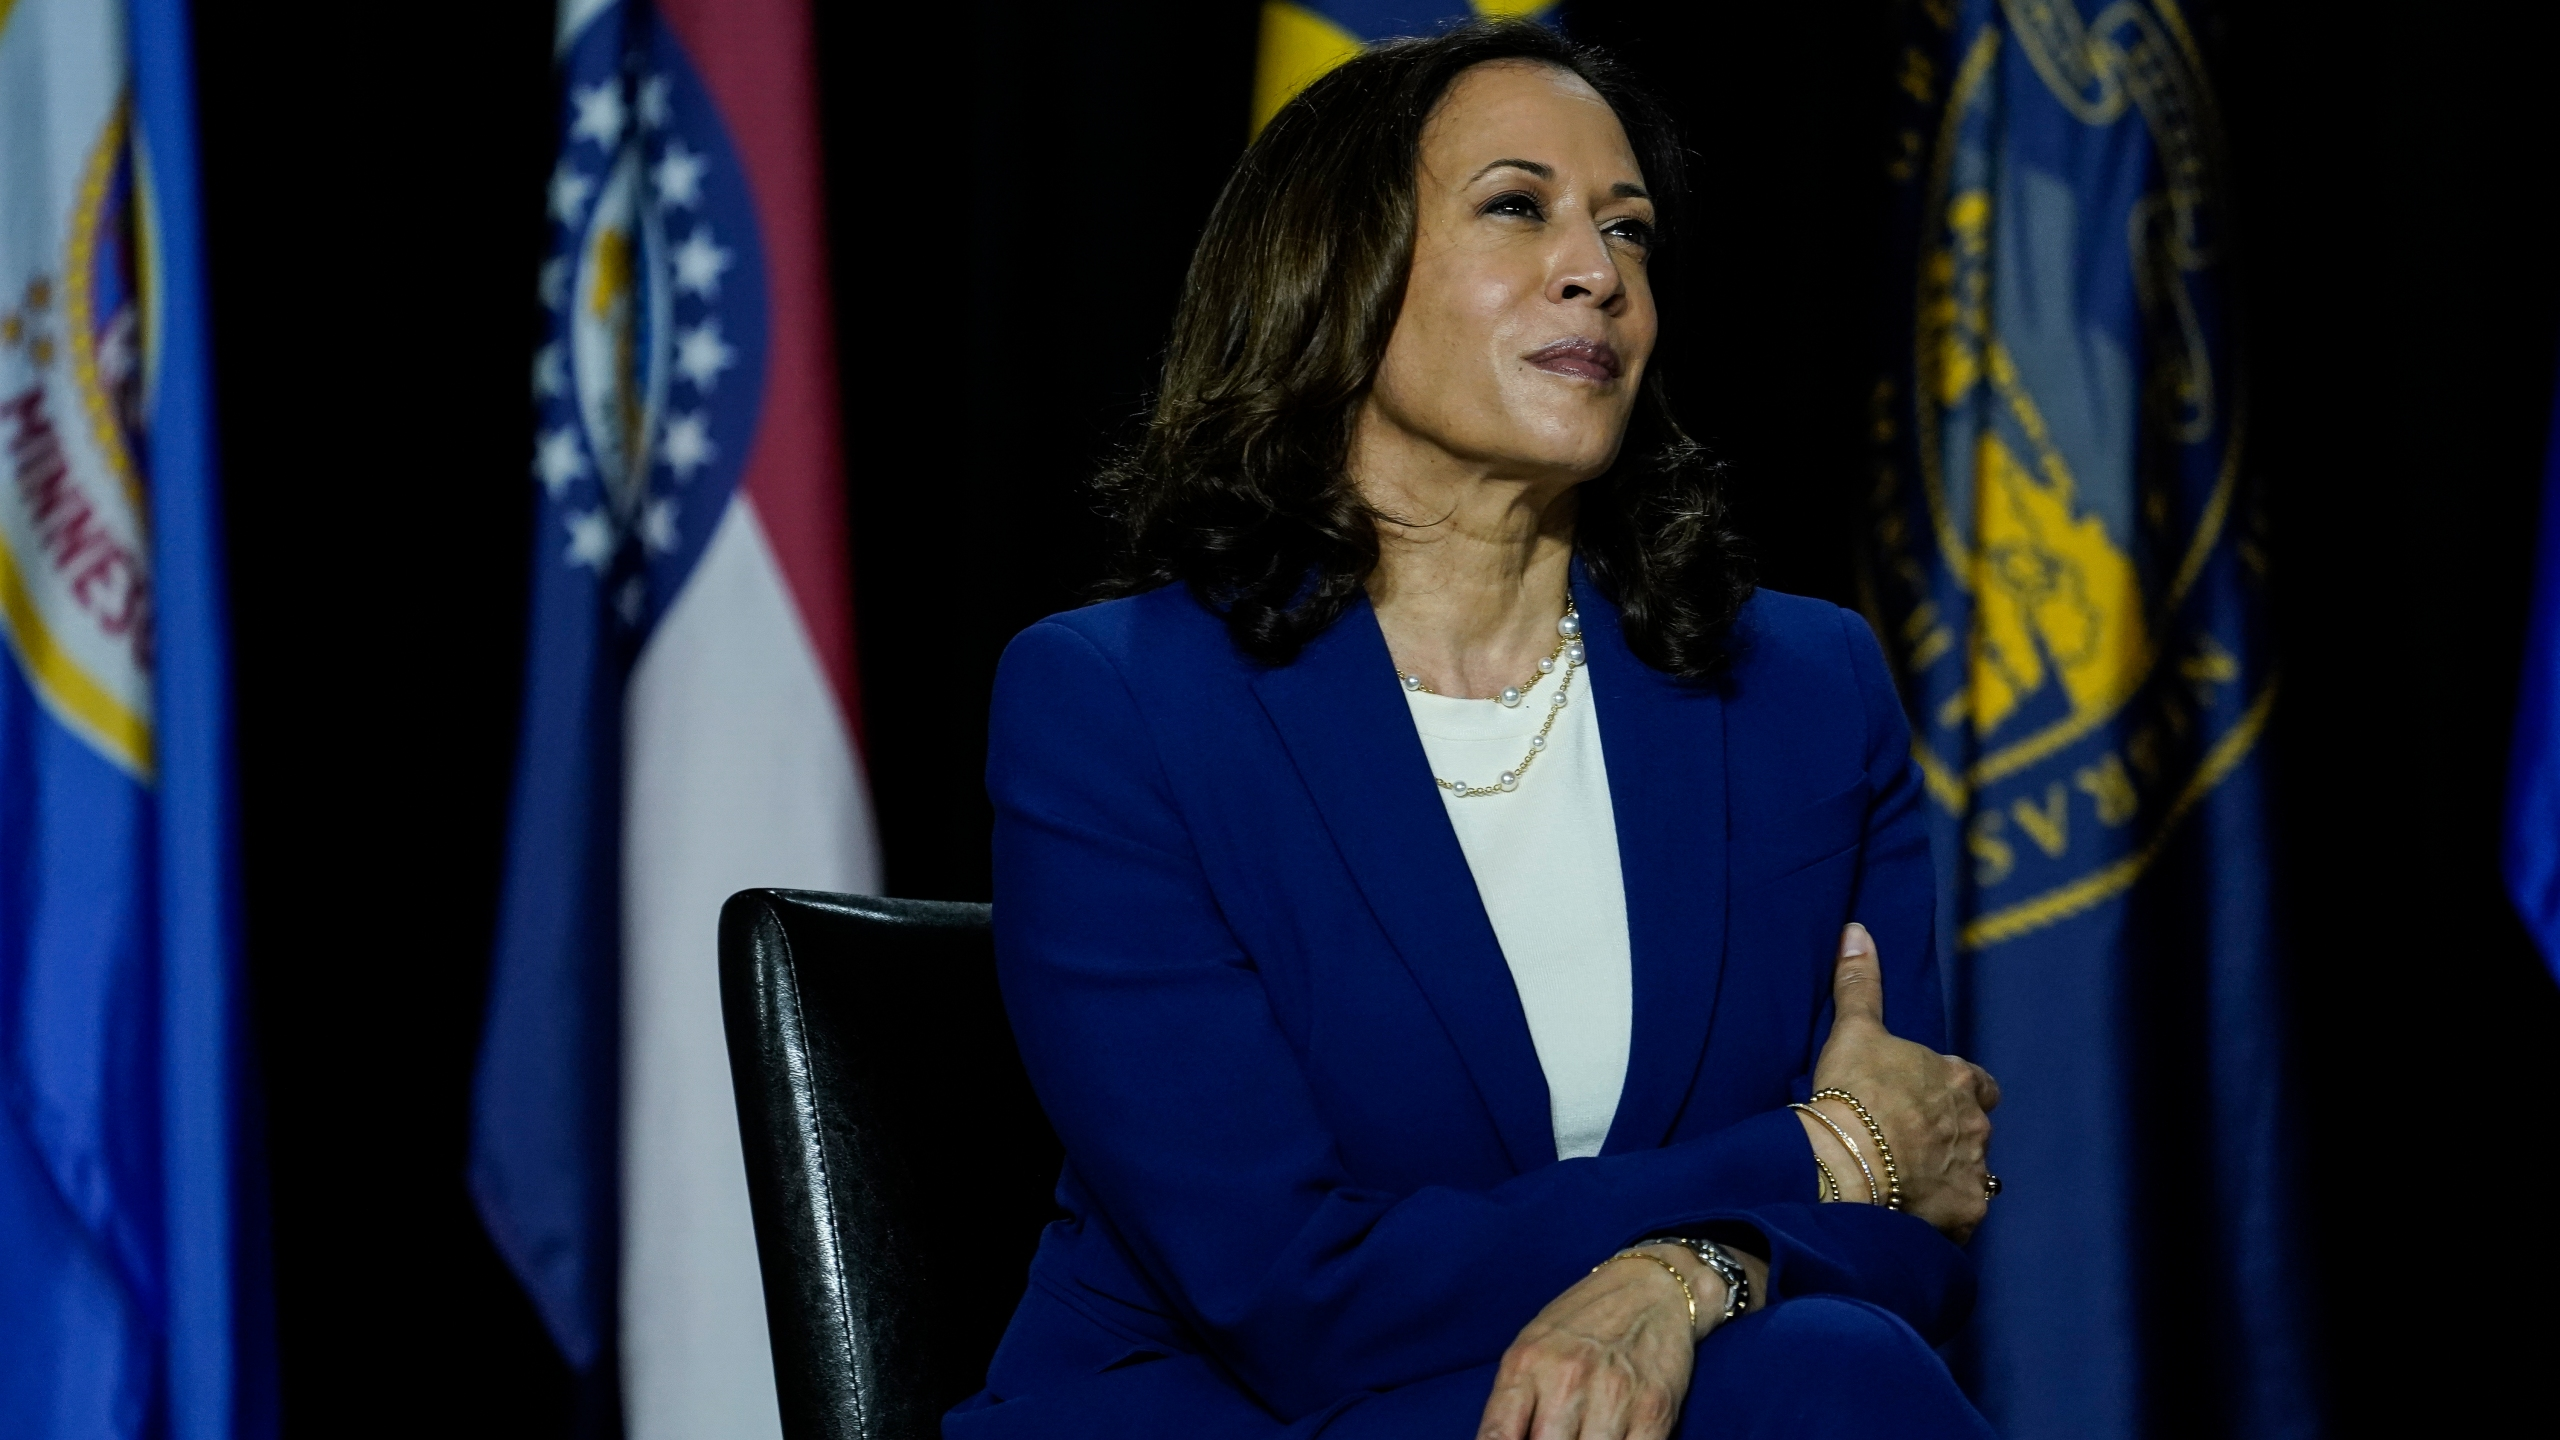 Sen. Kamala Harris listens to Joe Biden make remarks at the Alexis Dupont High School on Aug. 12, 2020 in Wilmington, Delaware. (Drew Angerer/Getty Images)